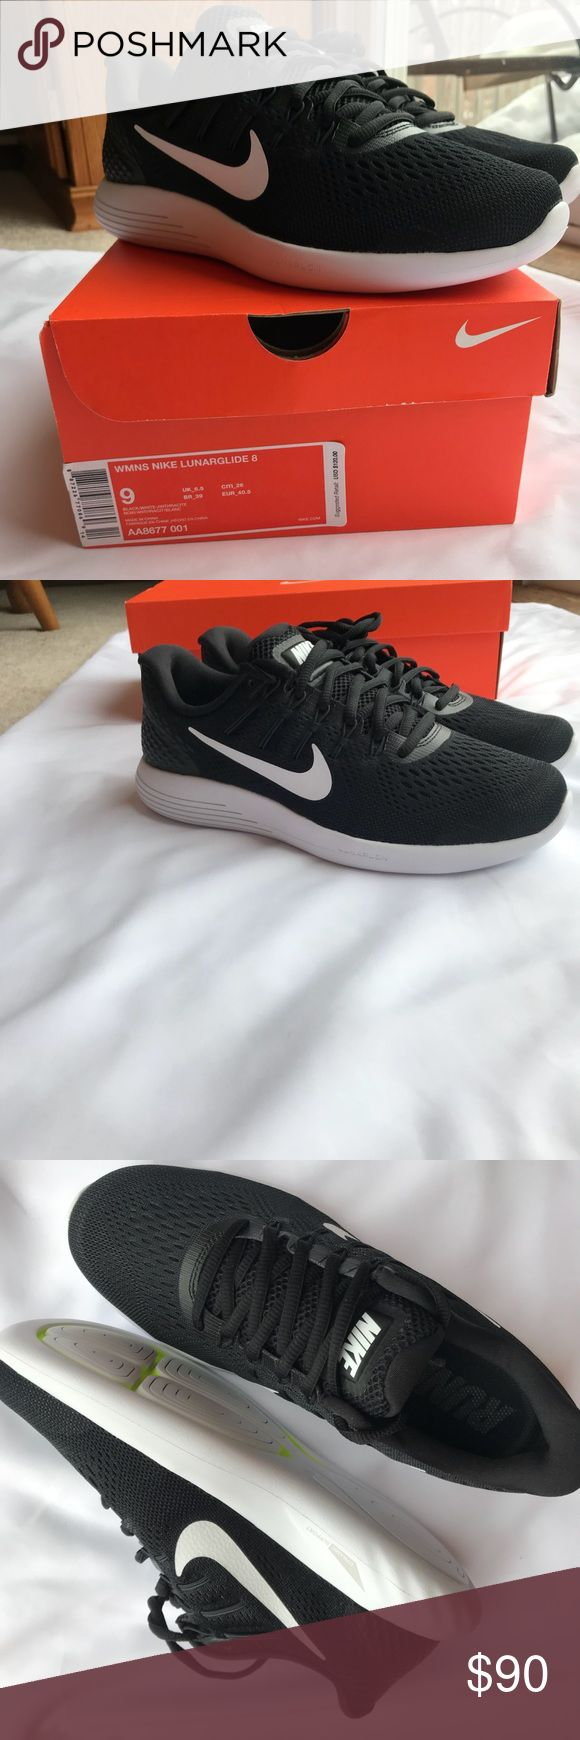 Nike Lunarglide 9 women's running shoe brand new New in the box classic black and white athletic shoes. Retails at $120. Super comfy  Style AA8677-001 Nike Shoes Athletic Shoes